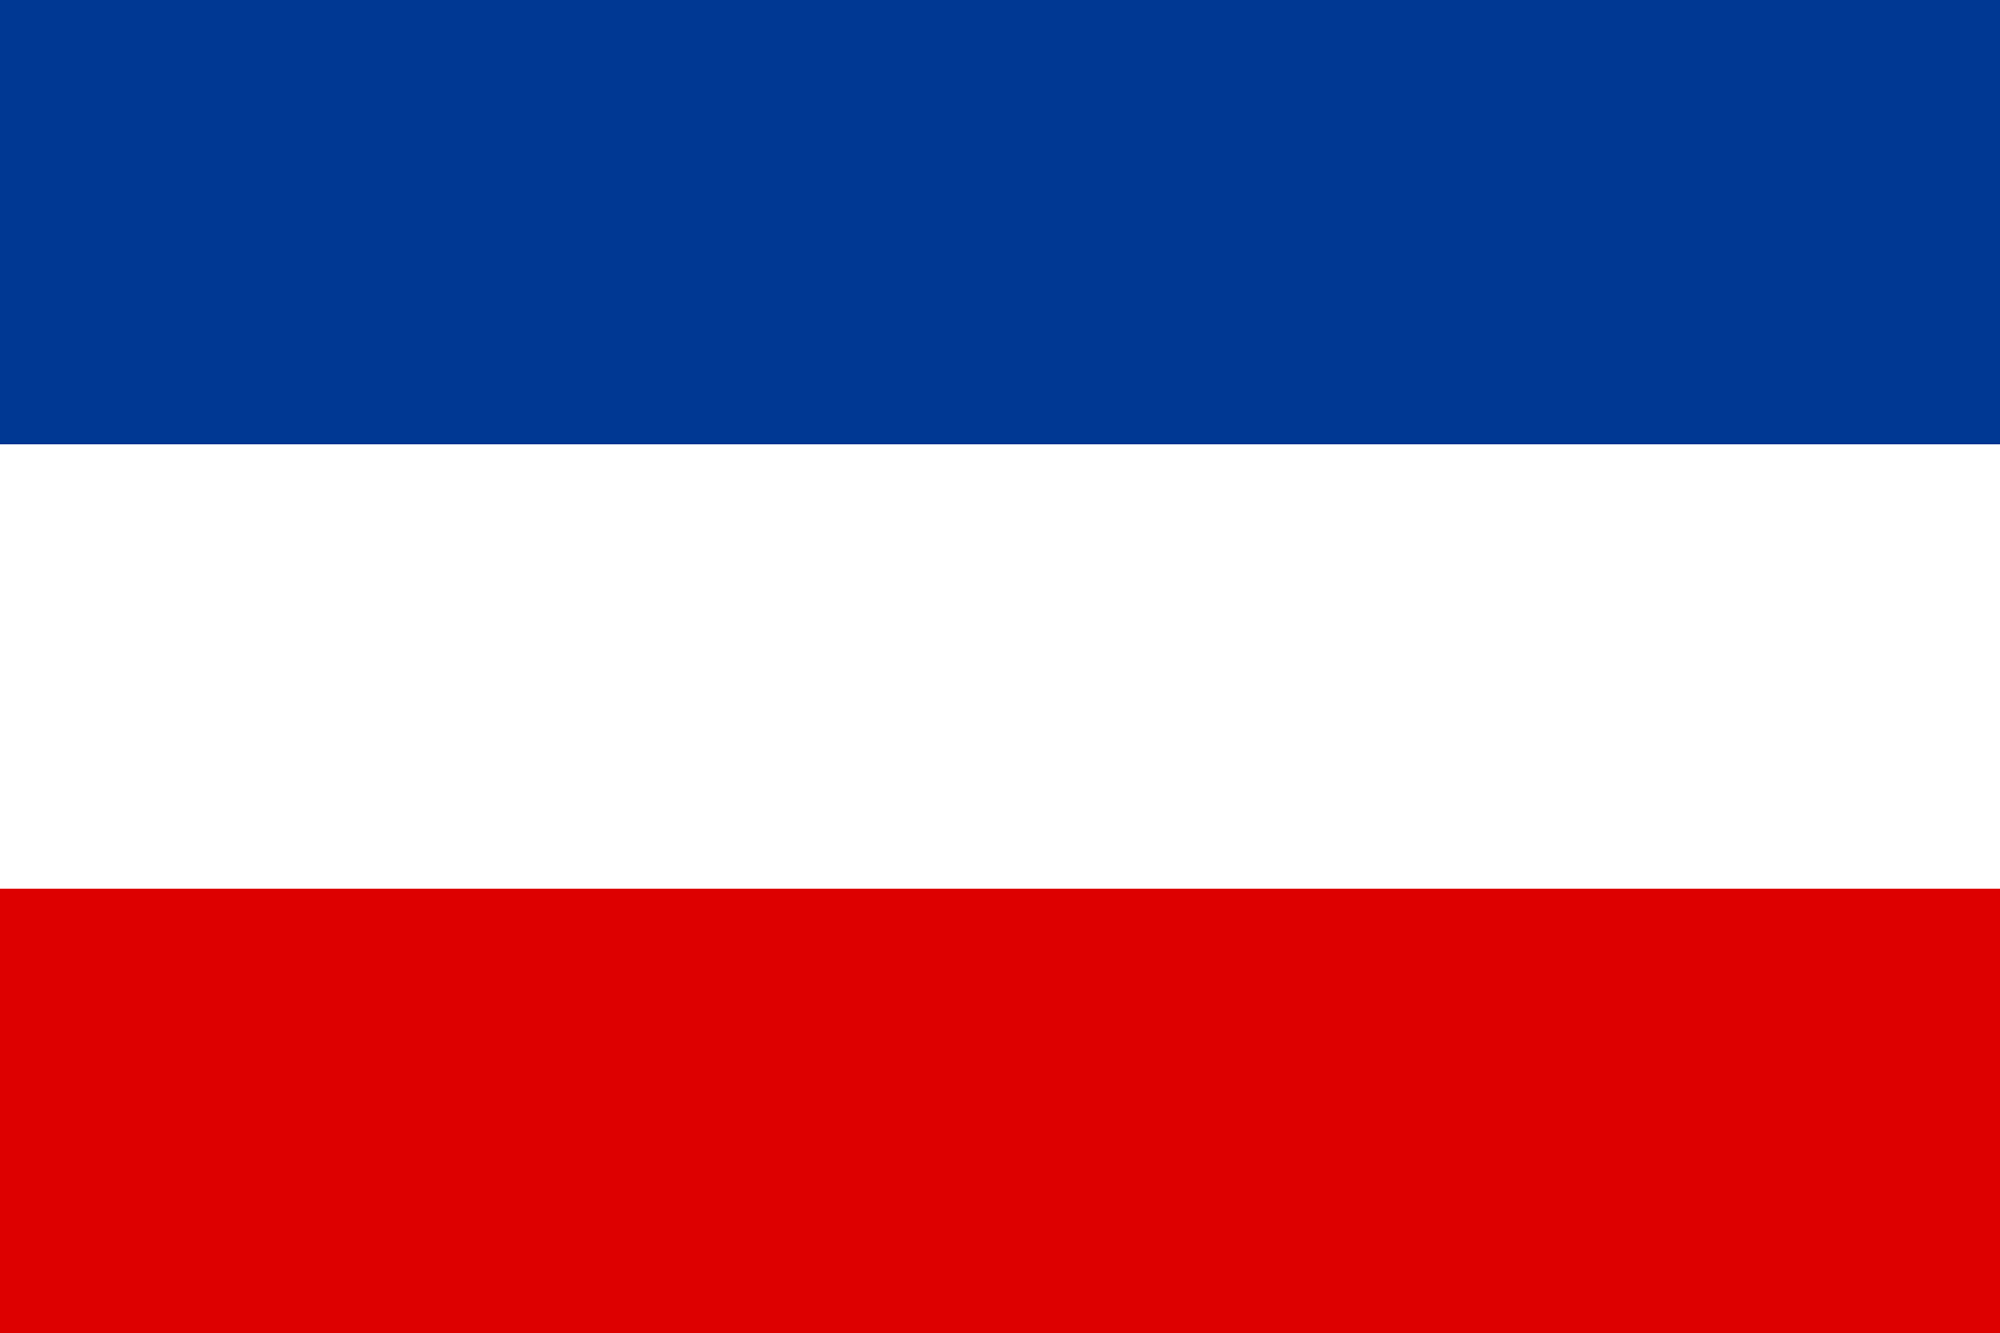 파일:2000px-Flag_of_the_Kingdom_of_Yugoslavia.svg.png